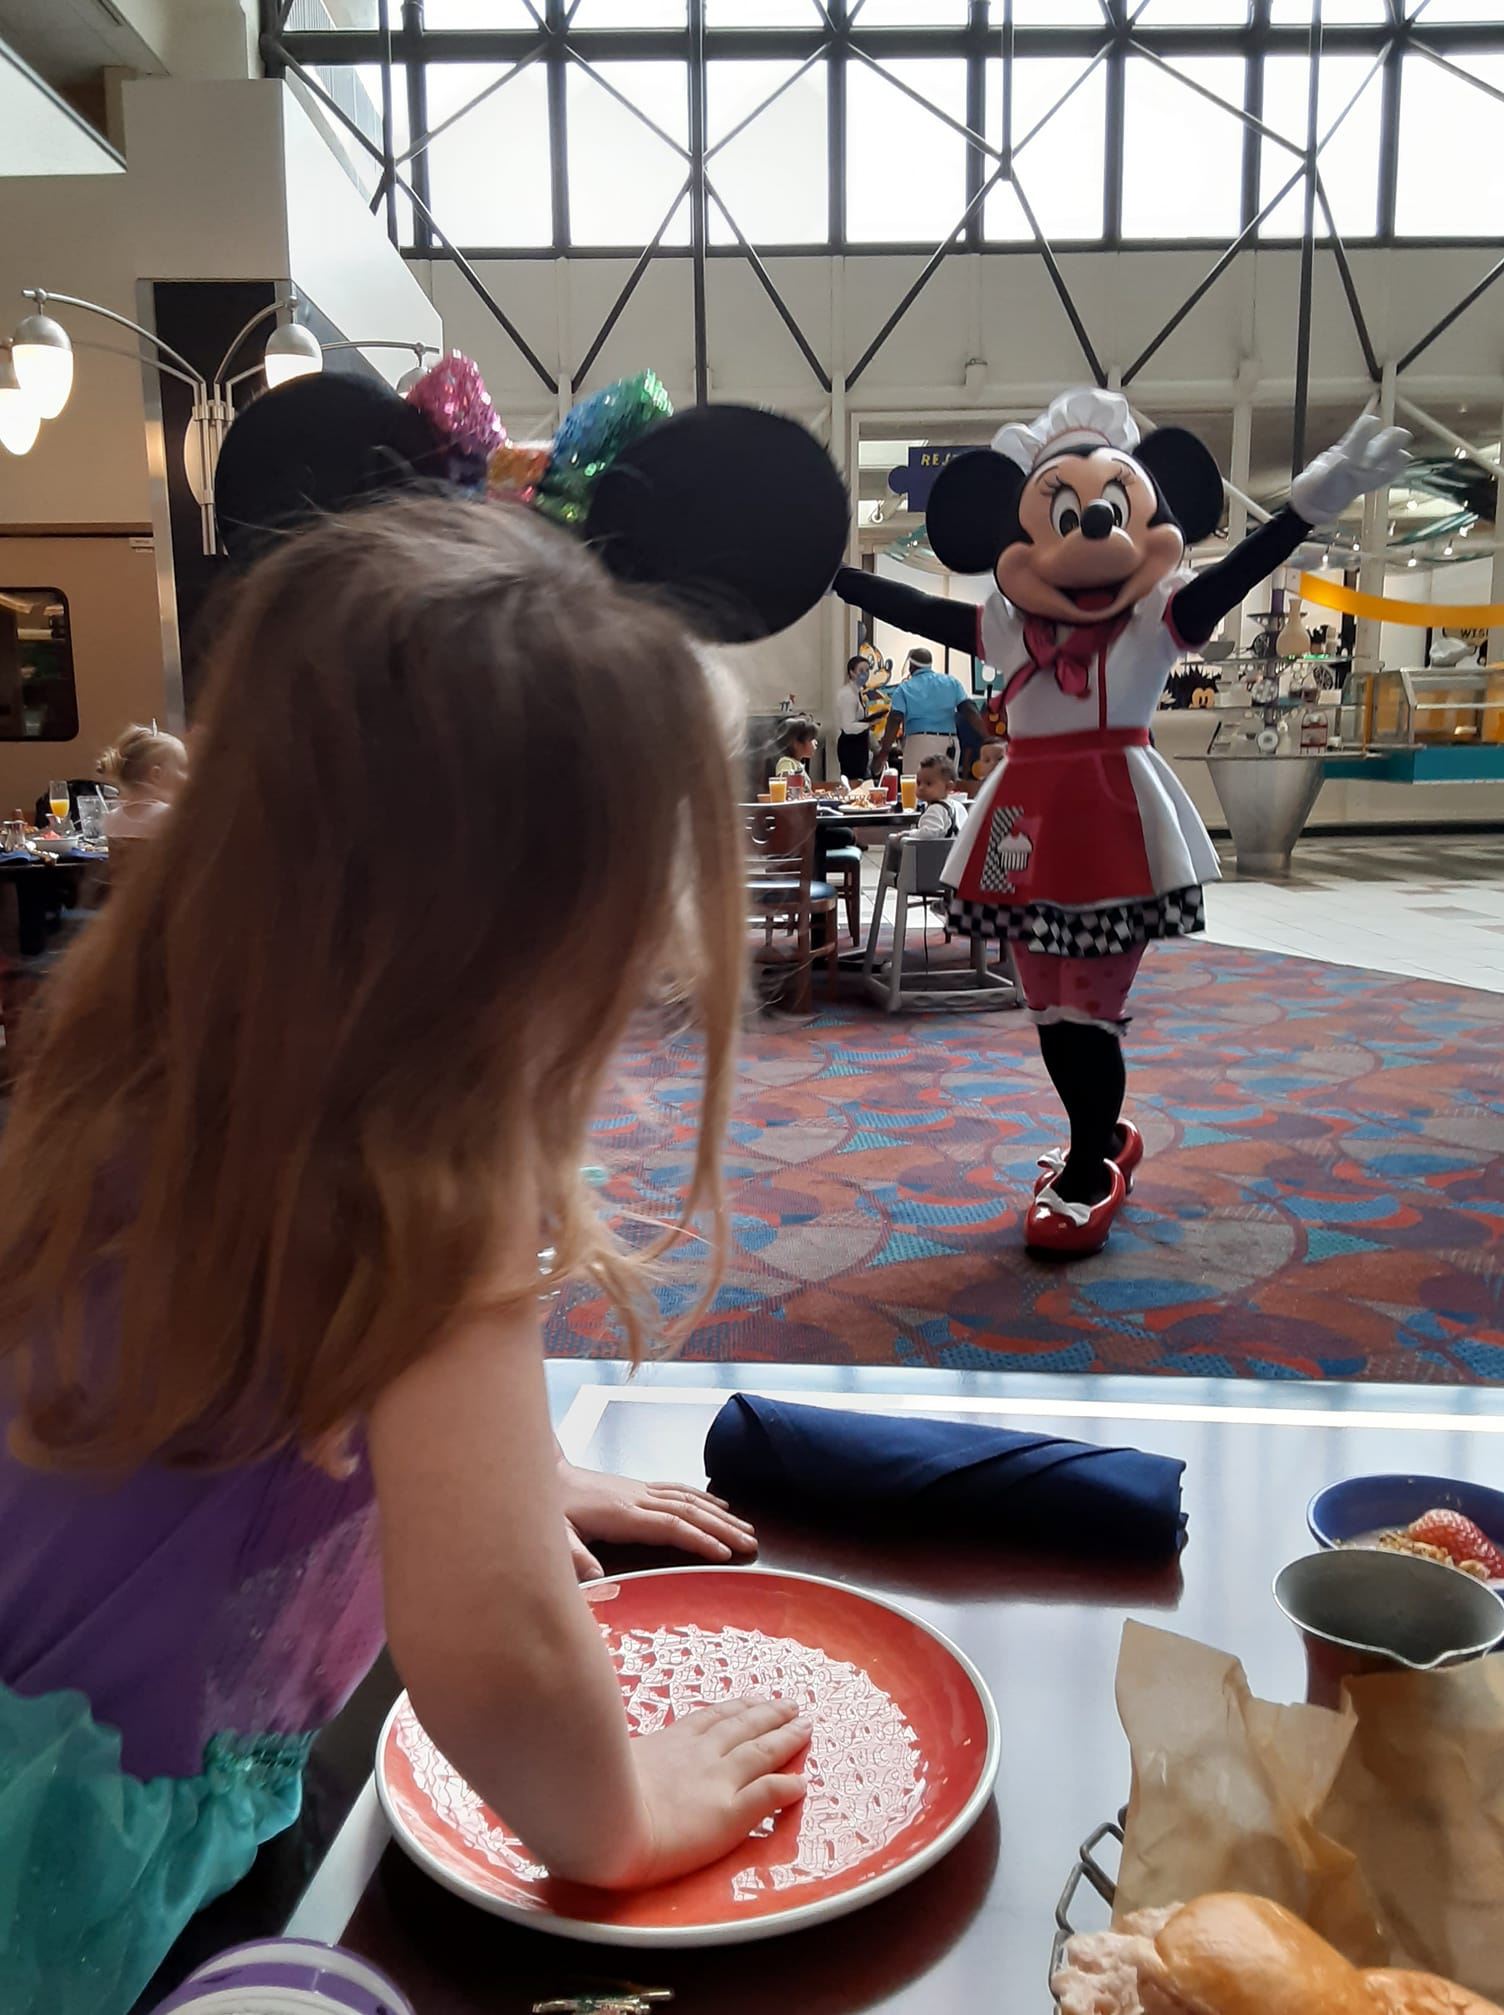 Character breakfast at Chef Mickey's with social distancing